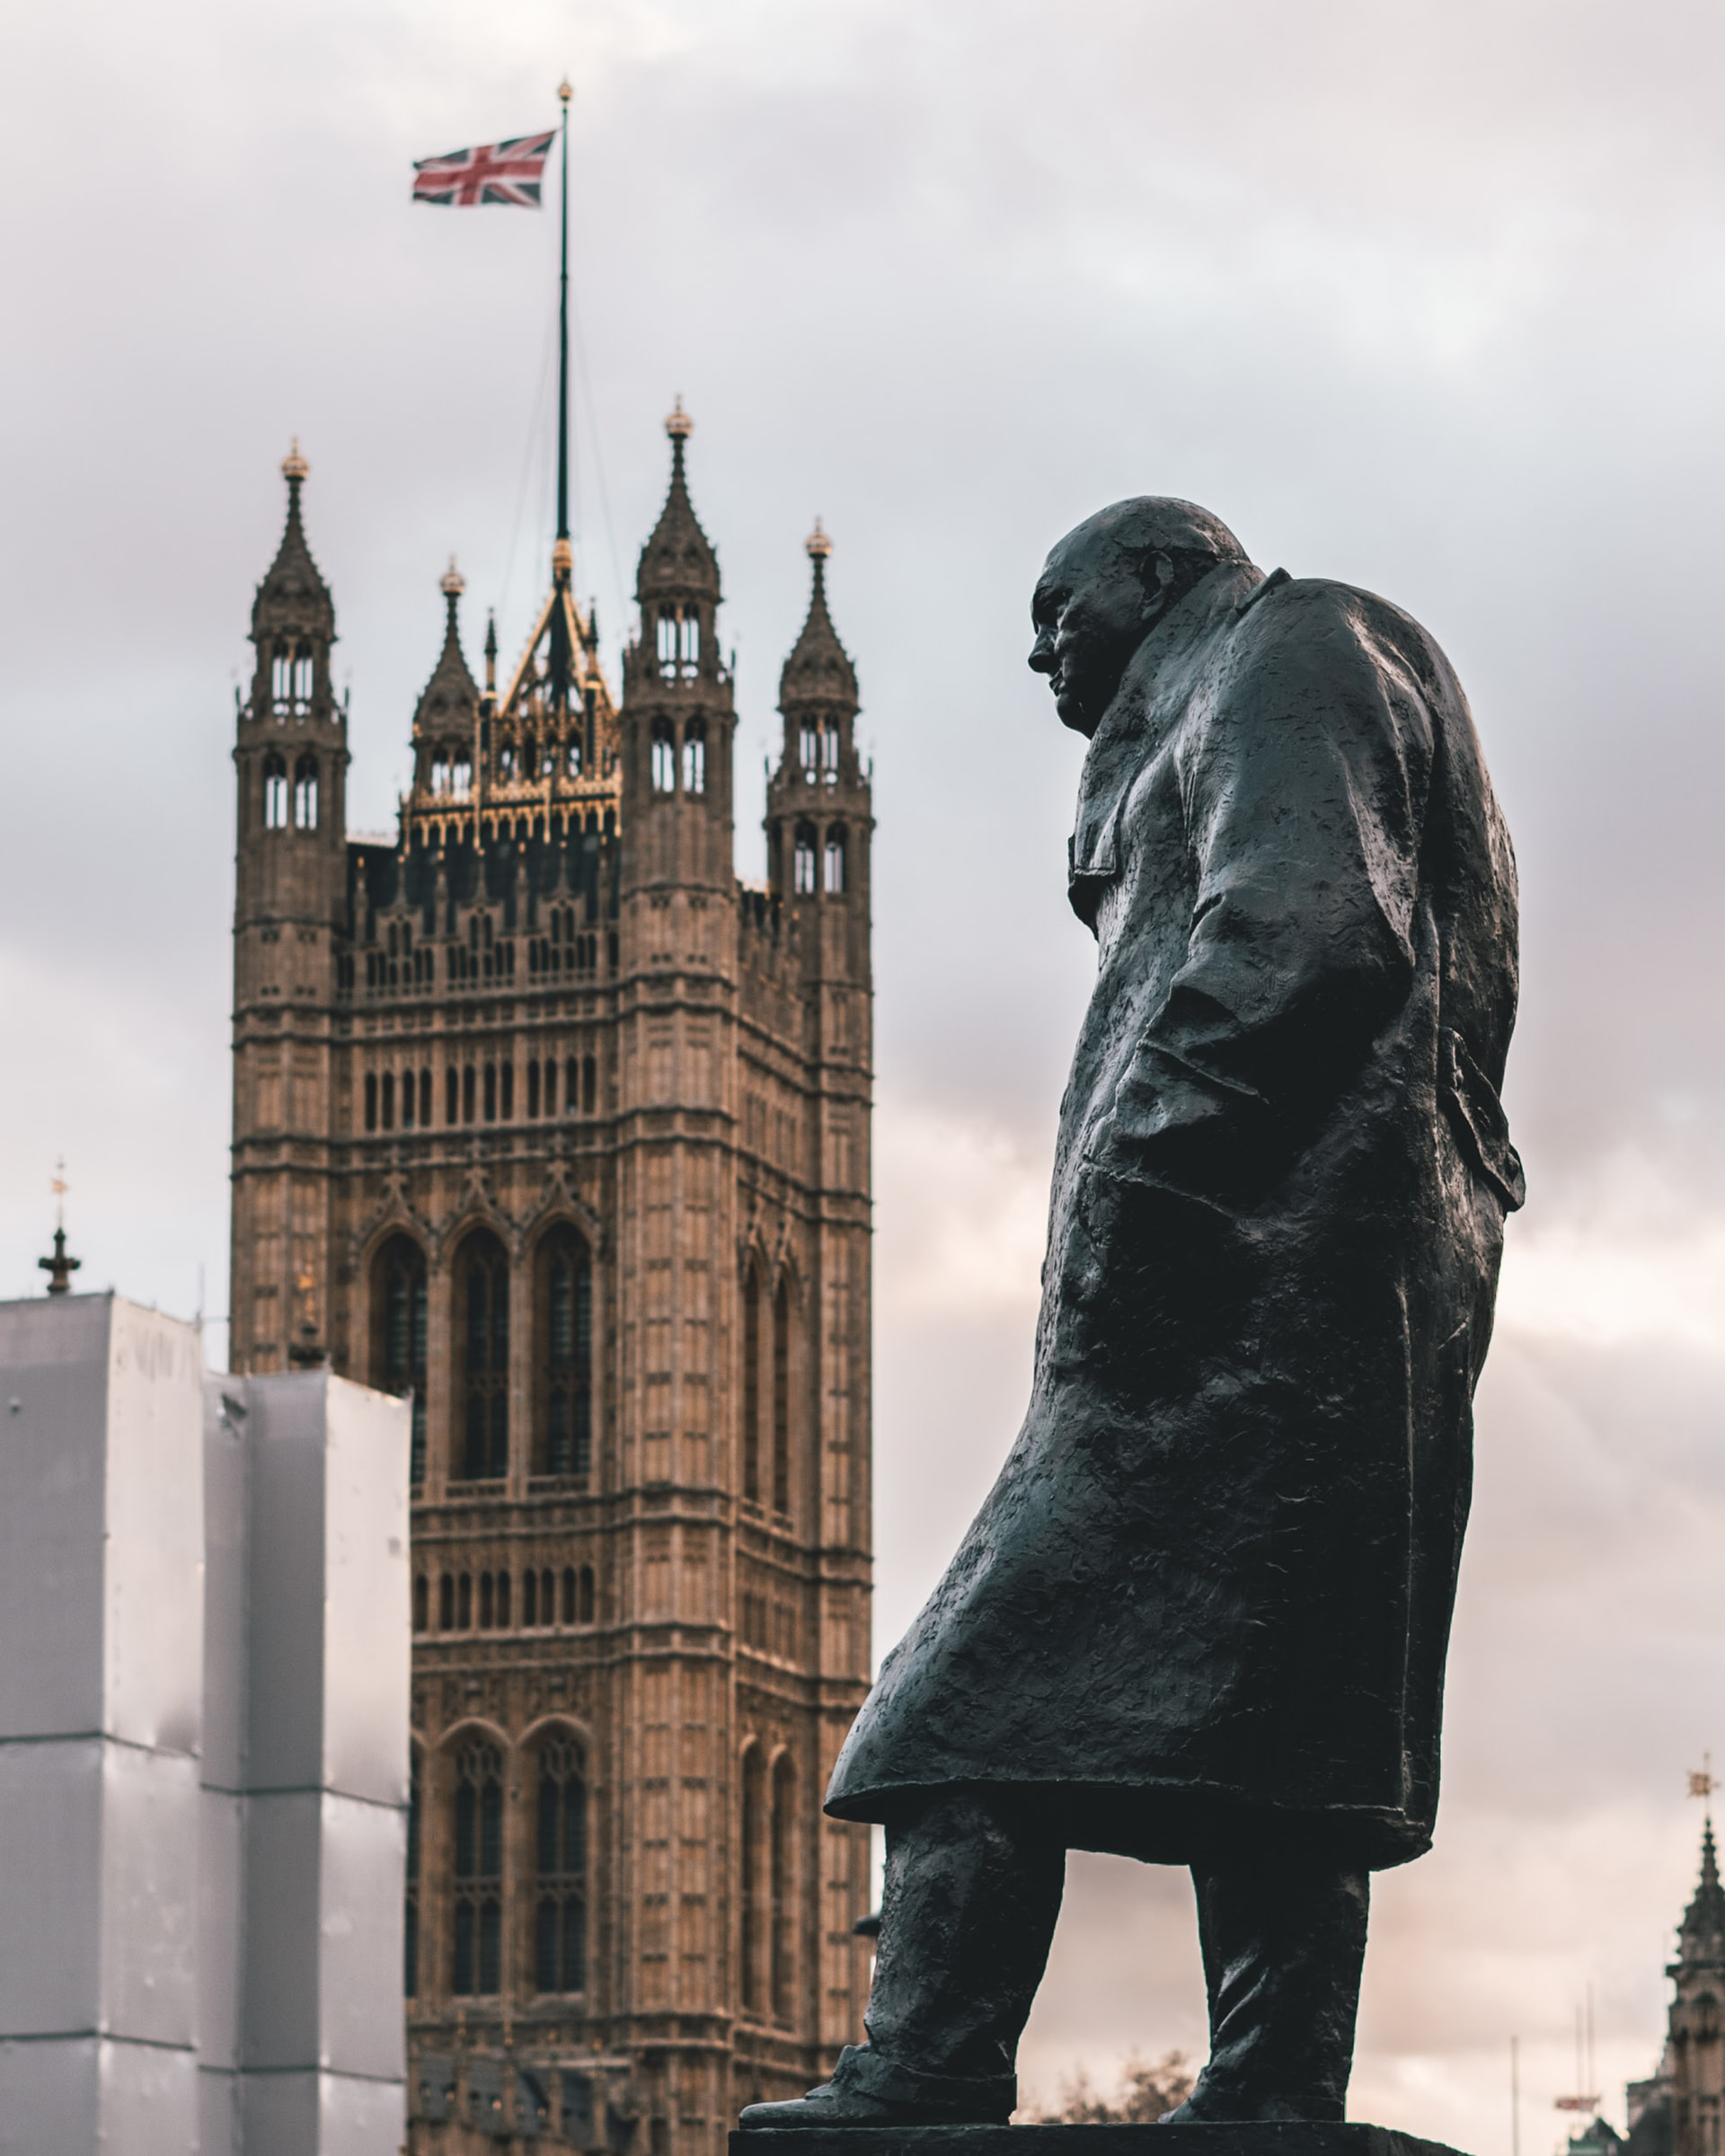 The statue of Winston Churchill in front of Westminster. VE Day 75th Anniversary